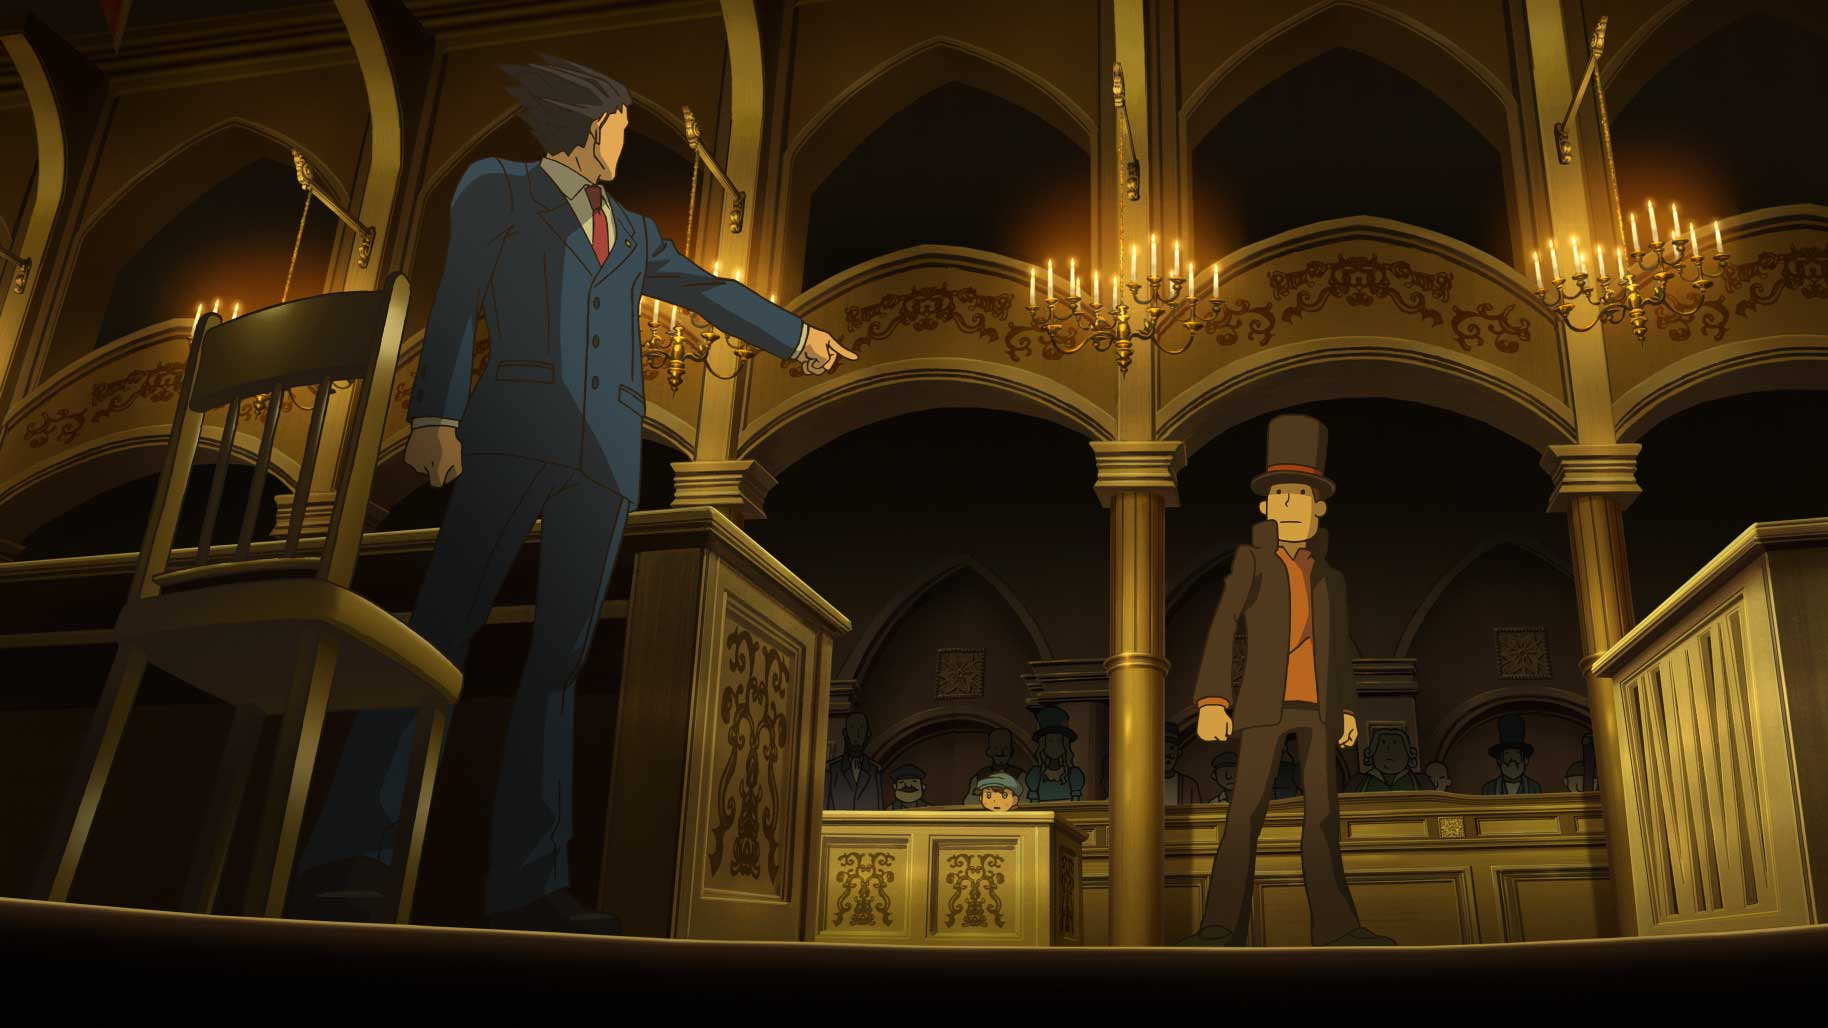 Prof. Layton vs Ace Attorney